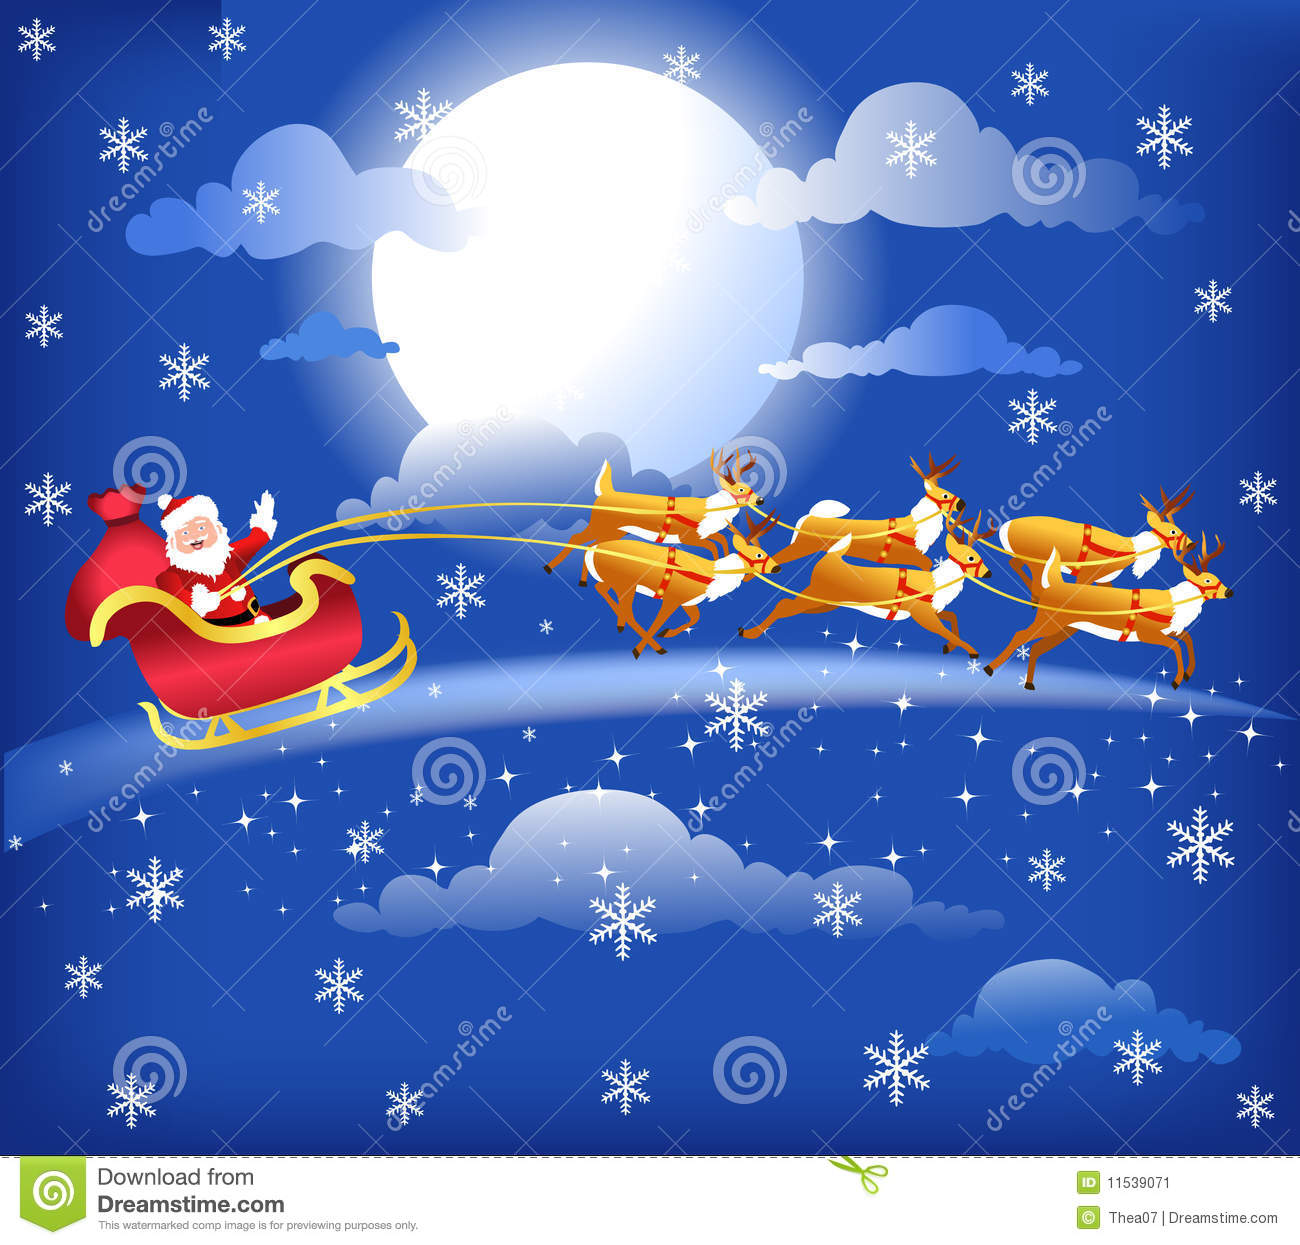 santa in his sleigh with his reindeer stock vector illustration of